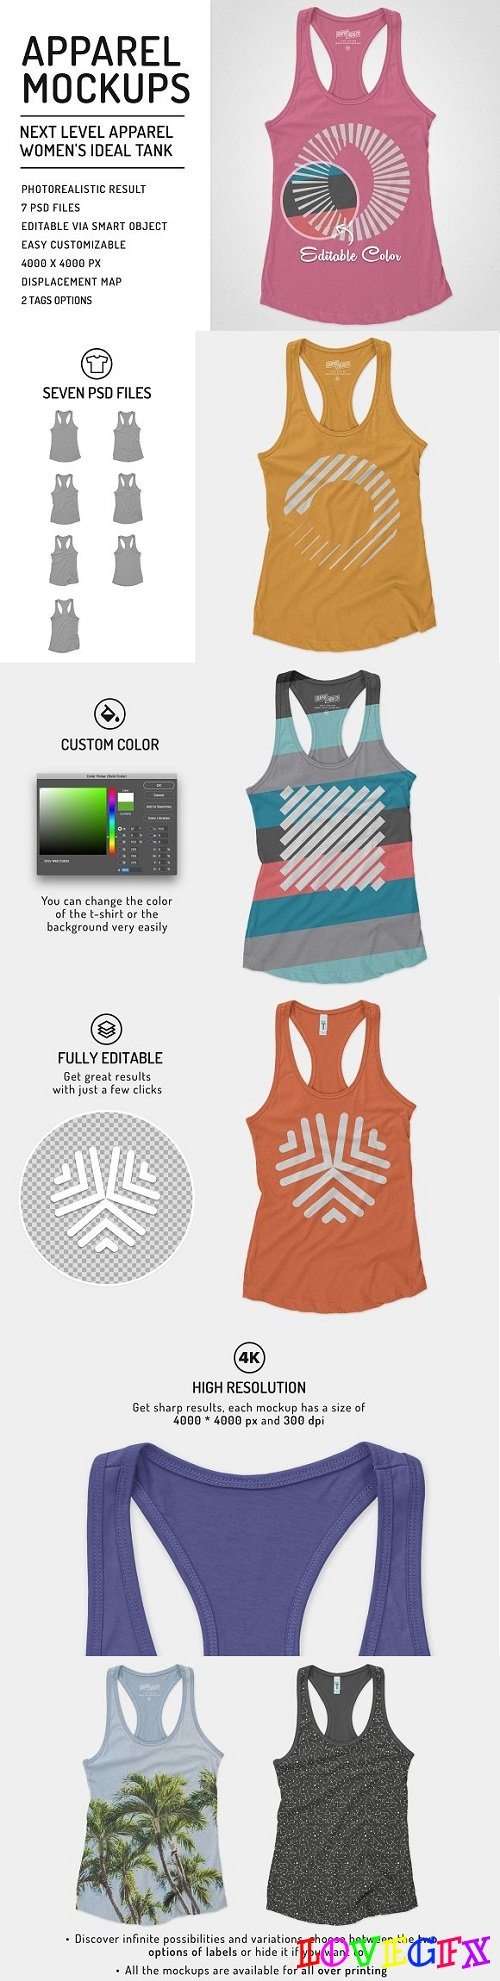 Women Ideal Racerback Tank Mockups 1957389